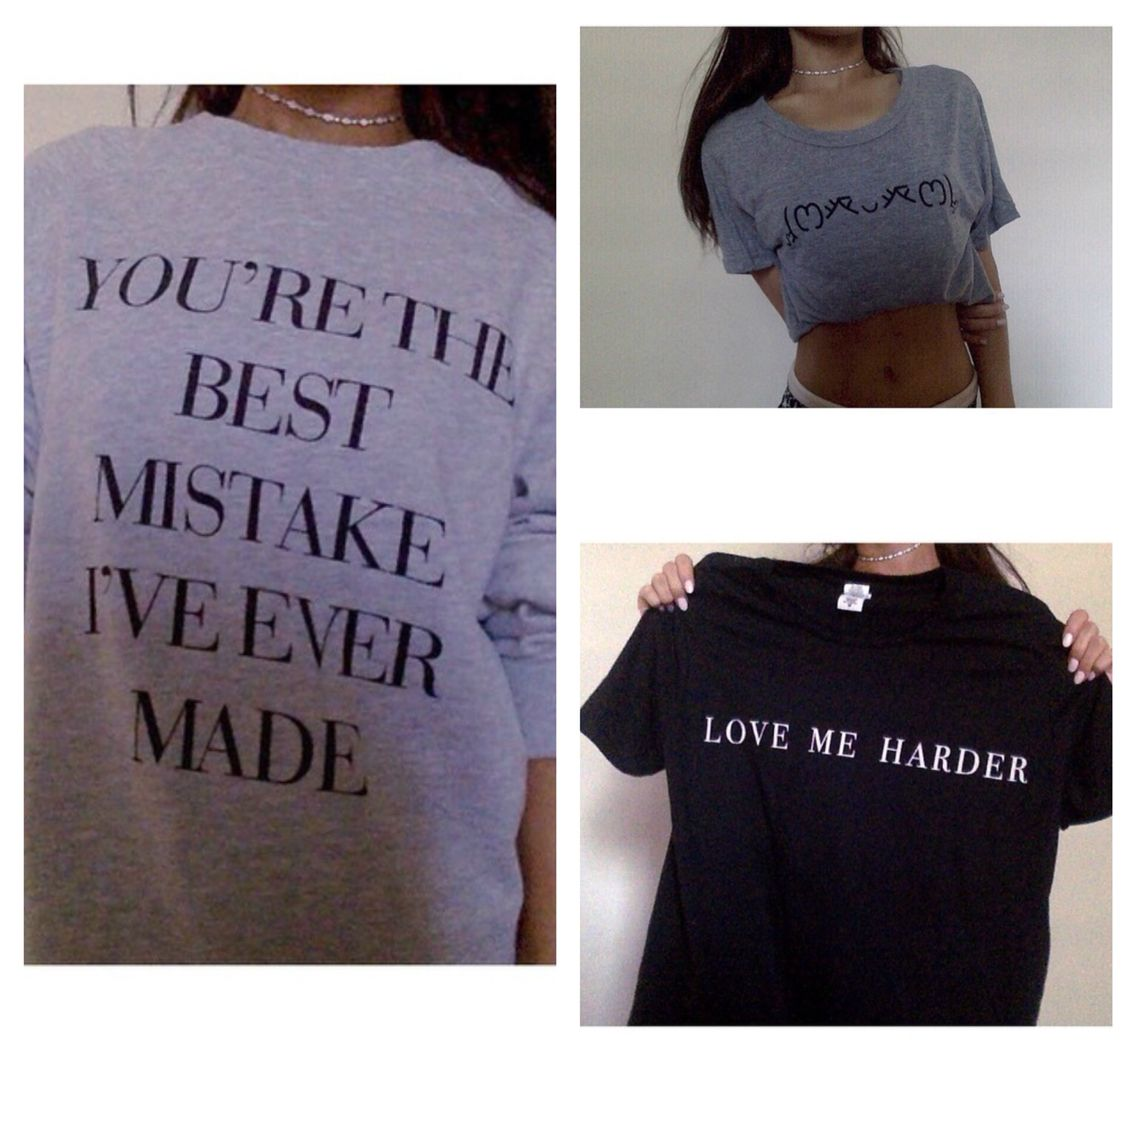 c03b5b865 Ariana Grande's new merchandise for honeymoon tour!!!! | Ariana ...